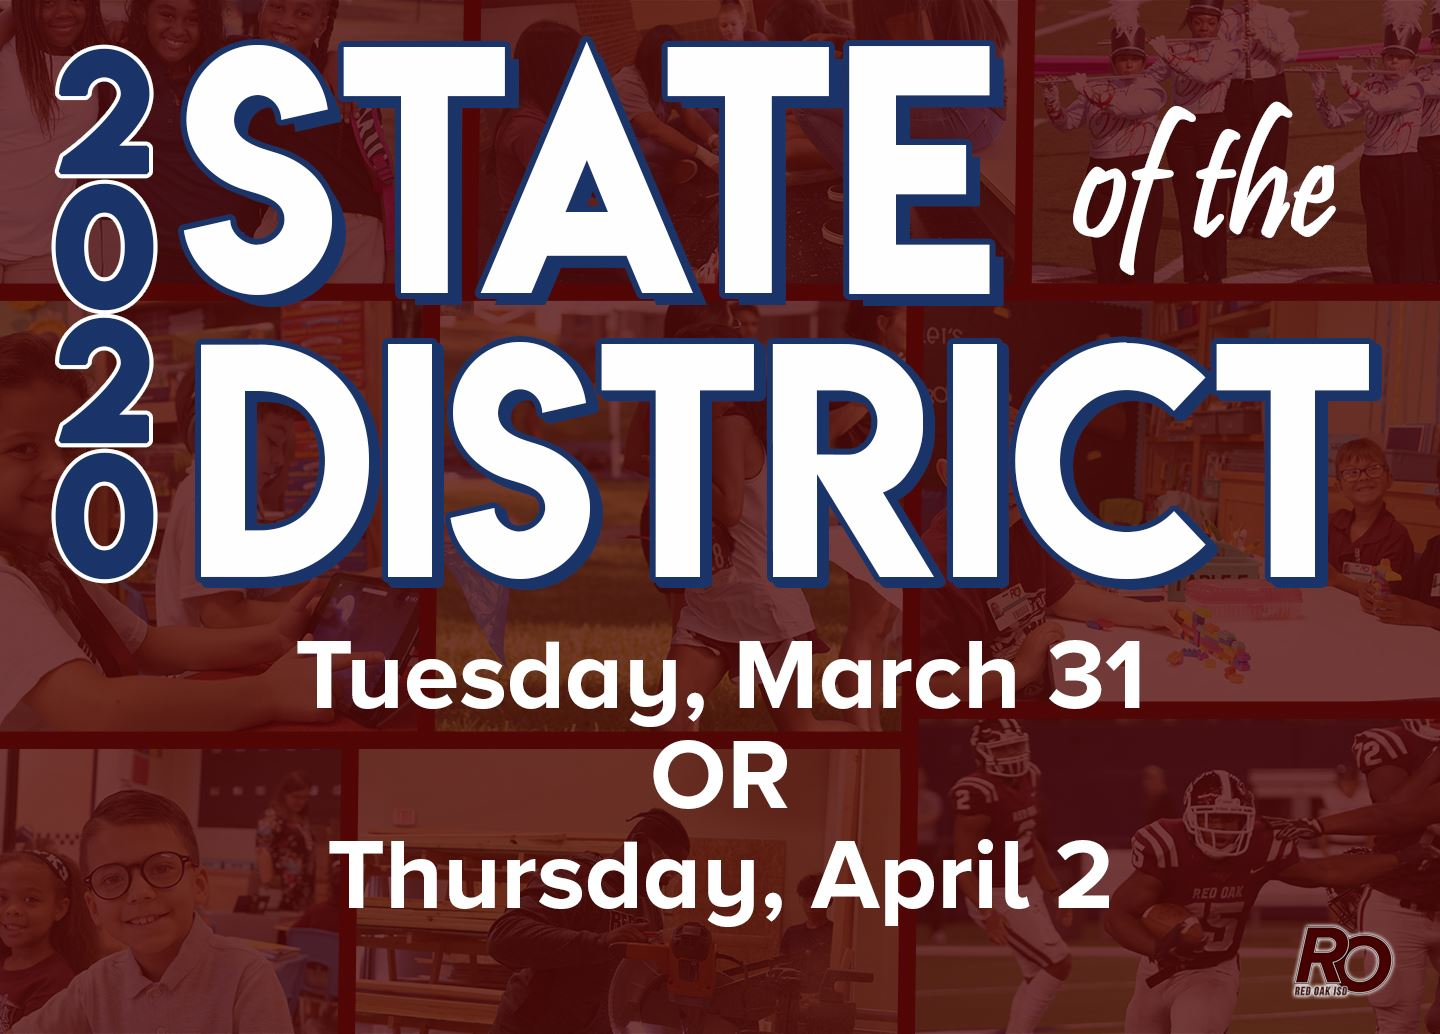 2020 State of the District on Tues. March 31 or Thurs. April 2.